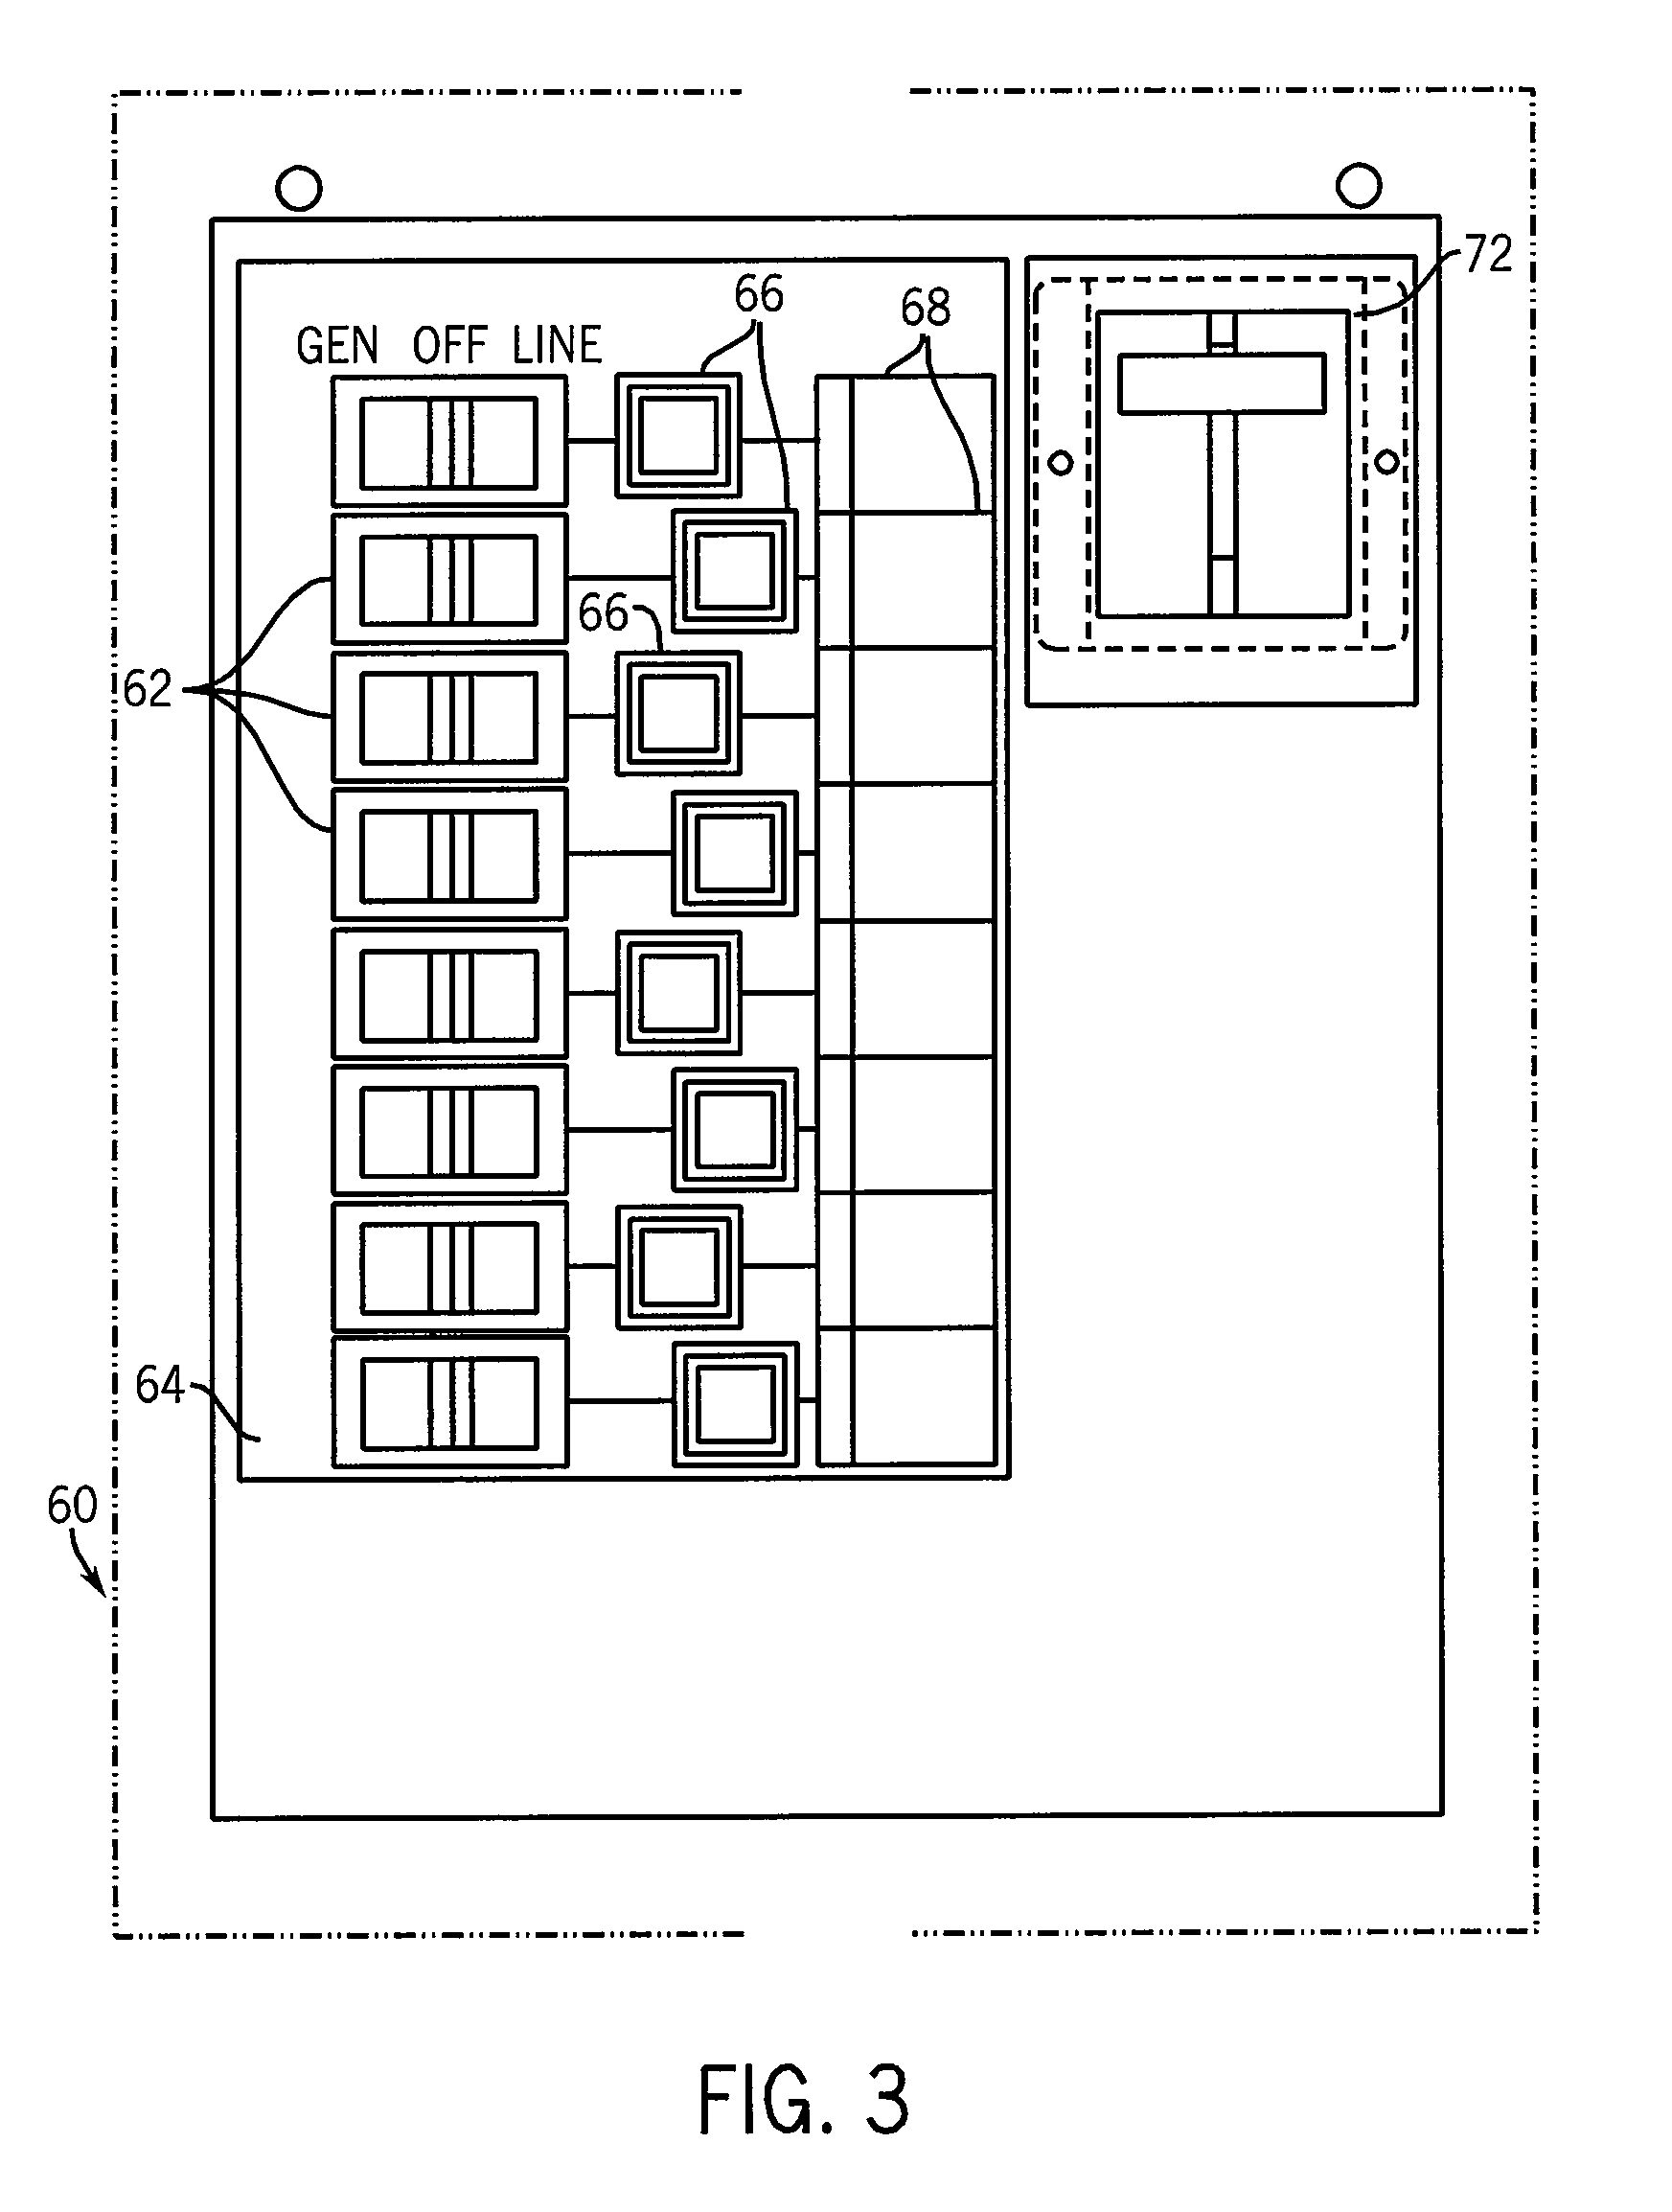 Patent Us8098465 Afci Breaker Providing Protection For Multiple Pass Seymour Arcfault Circuit Interrupter Drawing